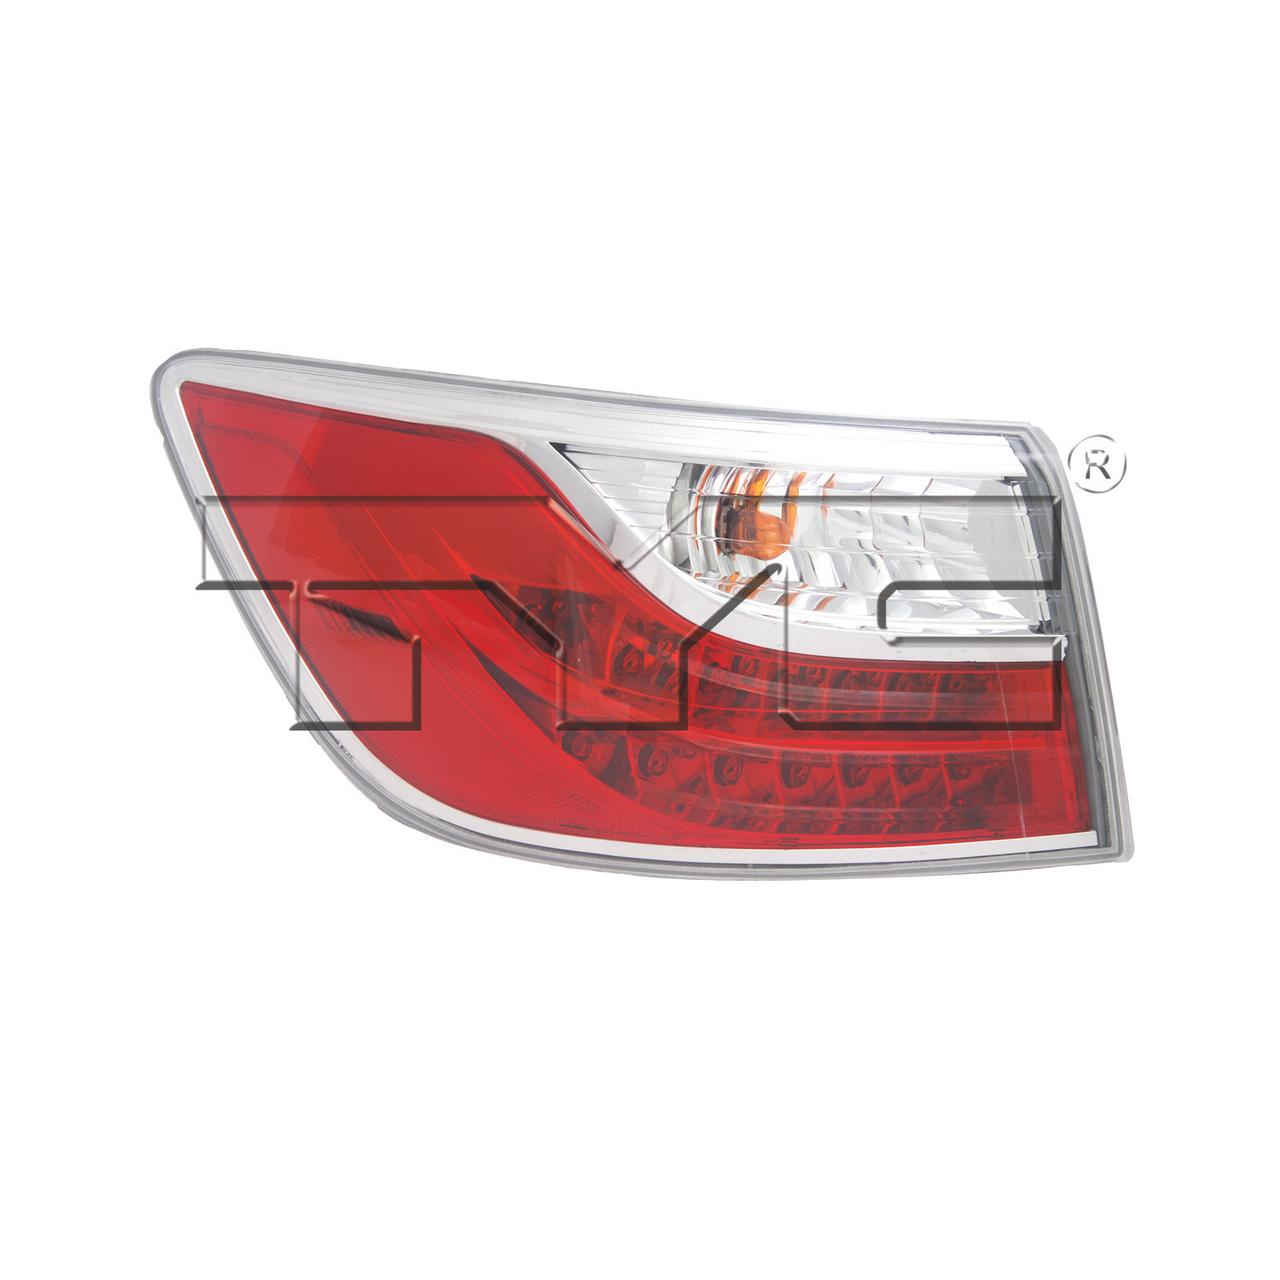 Replacement TYC 11-6421-00-9 Passenger Side Tail Light For